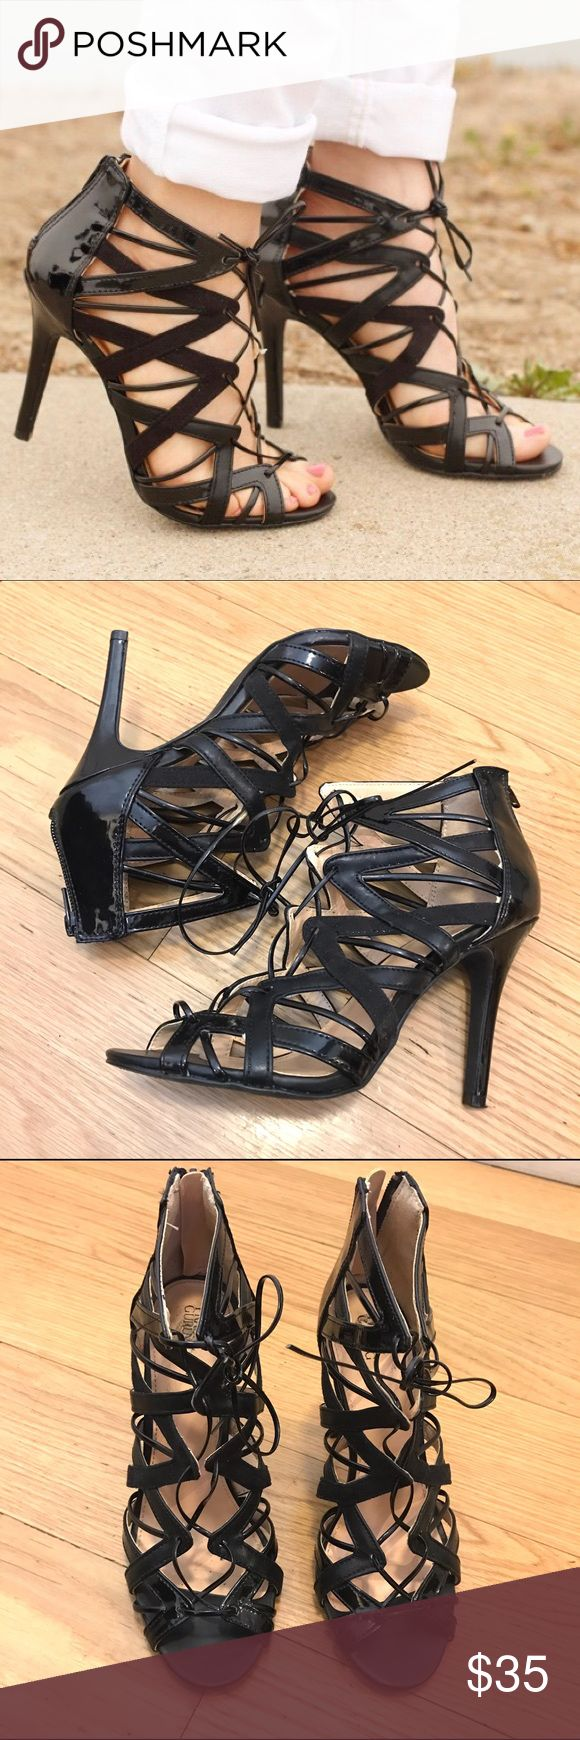 PRABAL GURUNG for Target Caged Heels Prabal Gurung for Target Caged Heels. -Size 7.5 -Excellent condition.   NO Trades. Please make all offers through offer button. Prabal Gurung for Target Shoes Heels